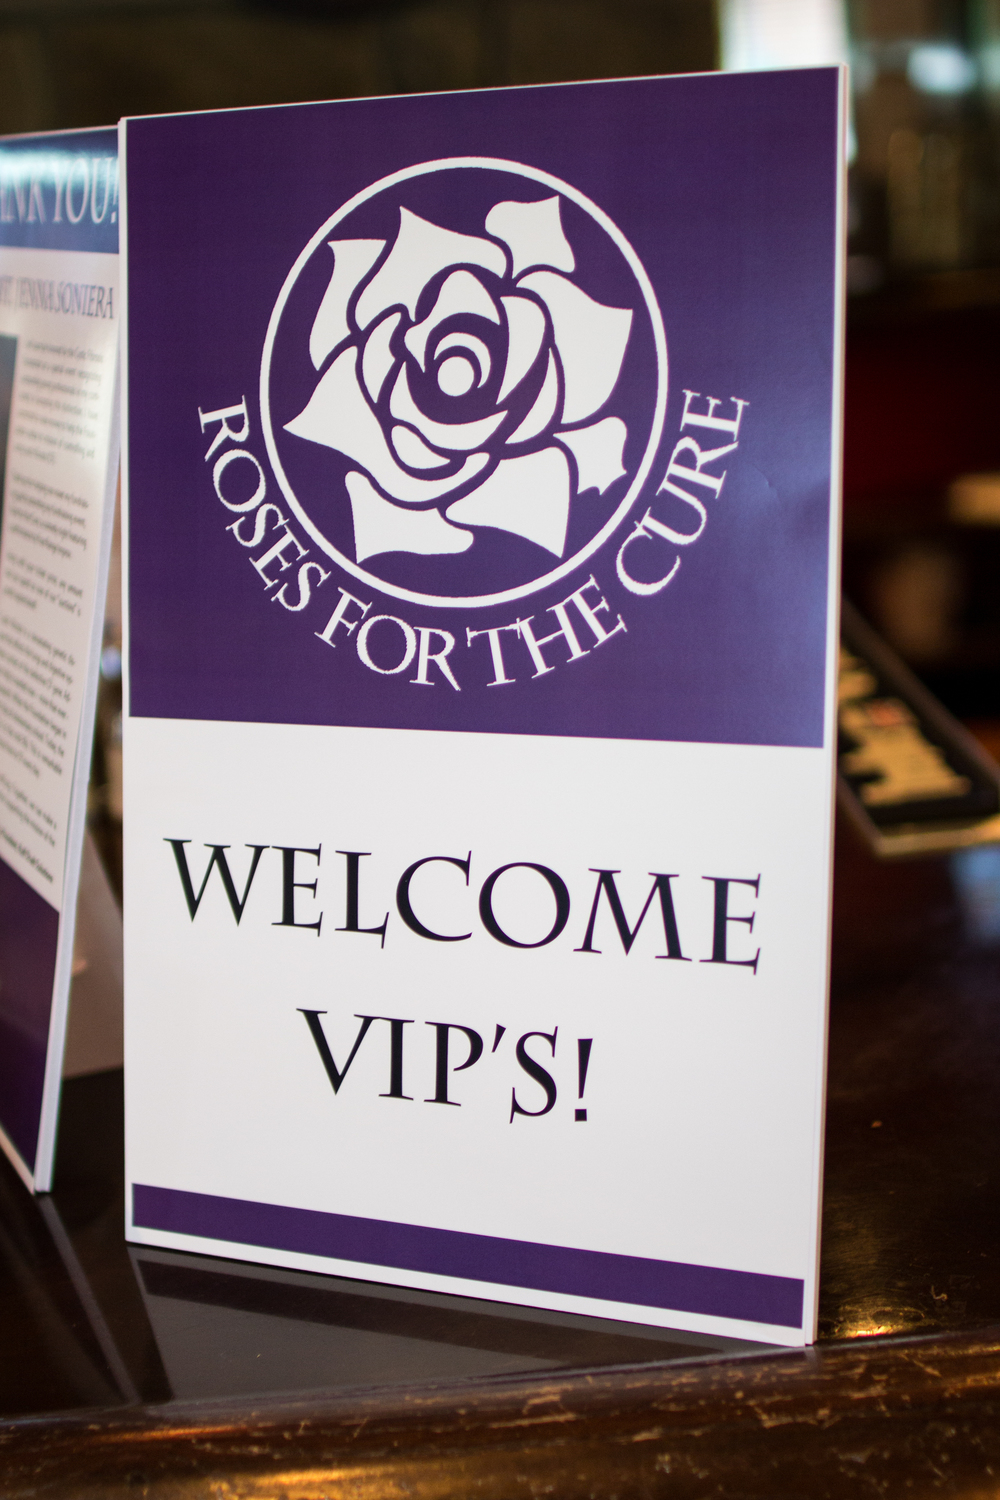 CFF_Annapolis_65_Roses_Charity_Photography-7.jpg